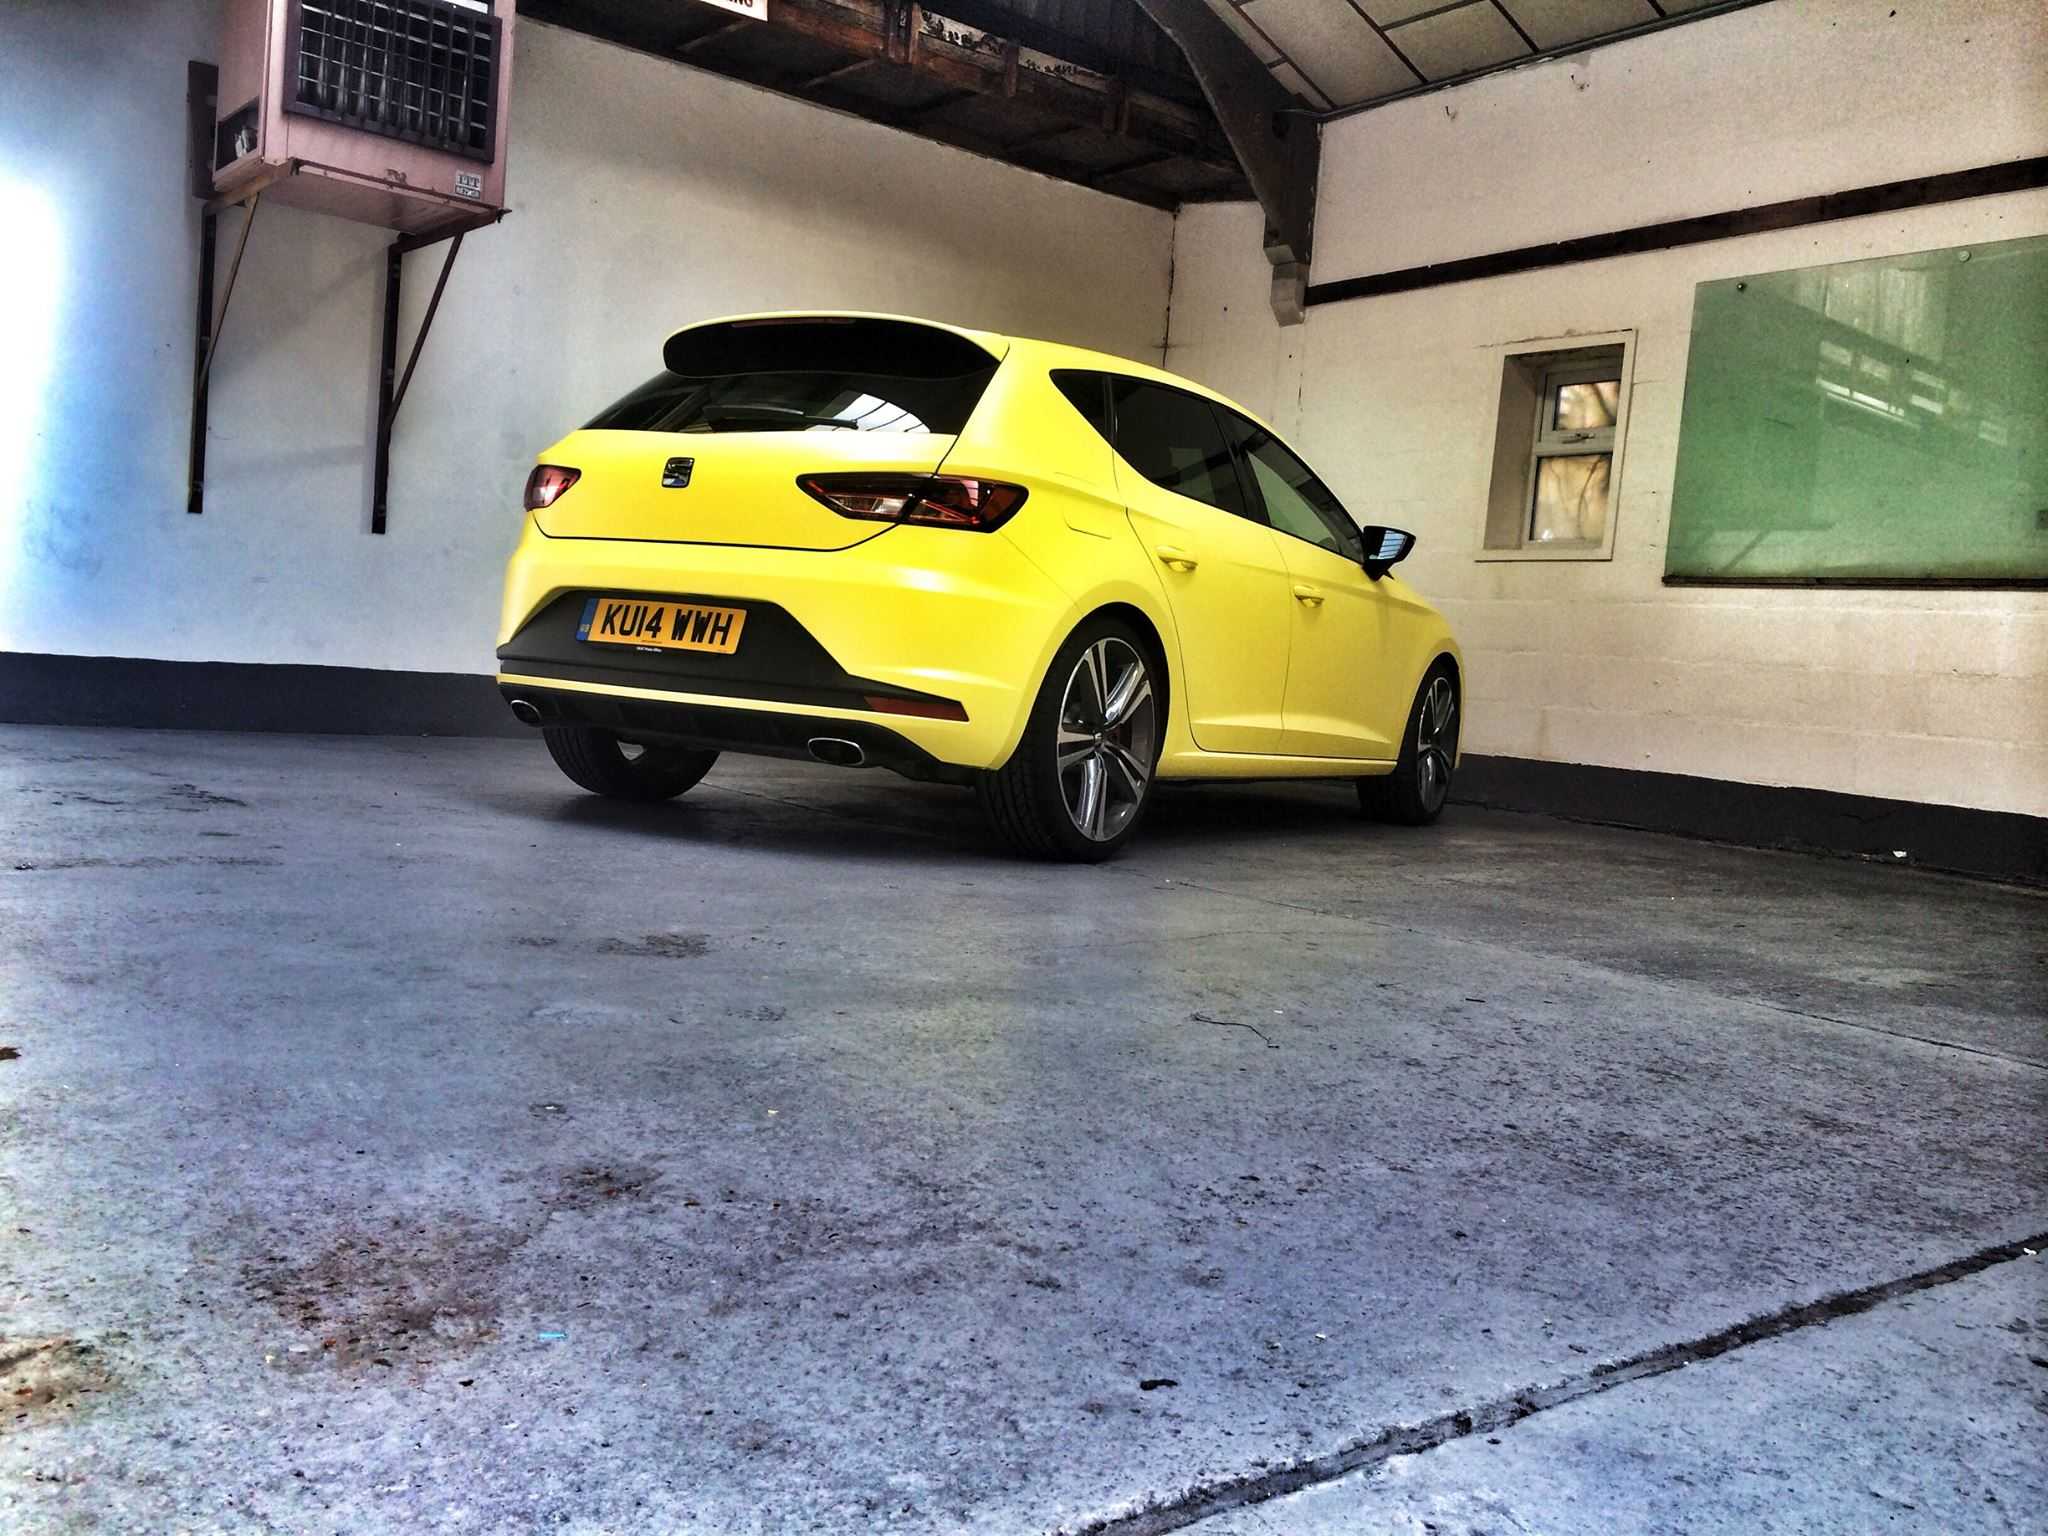 New SEAT Leon Cupra Wrapped in Matte Neon Yellow and ...